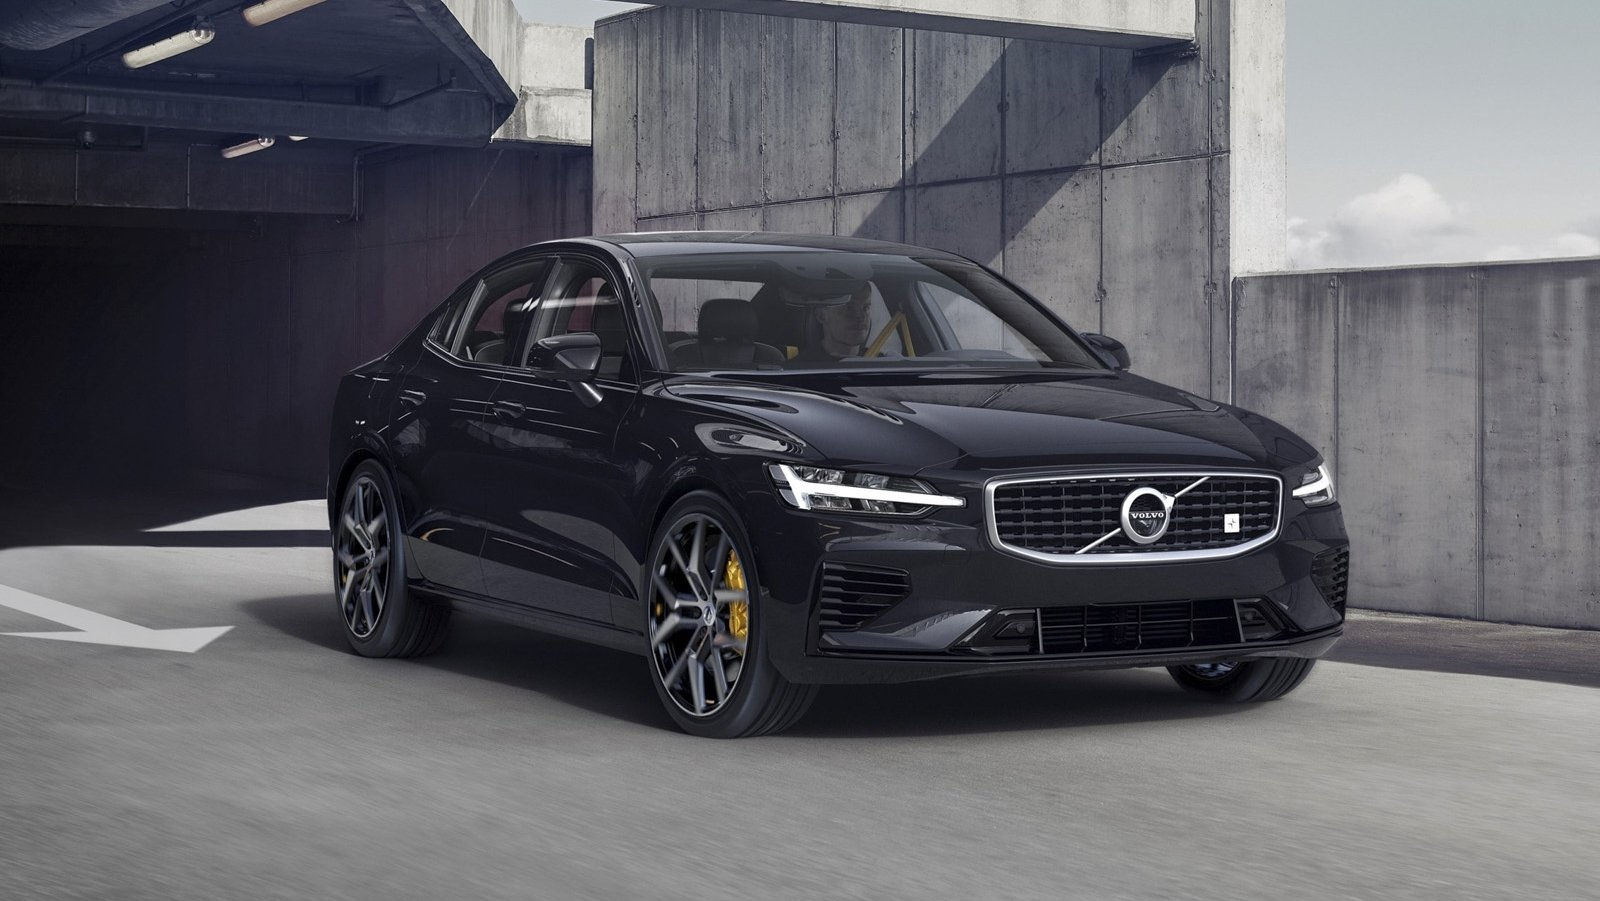 46 Best Review 2019 Volvo S80 History by 2019 Volvo S80